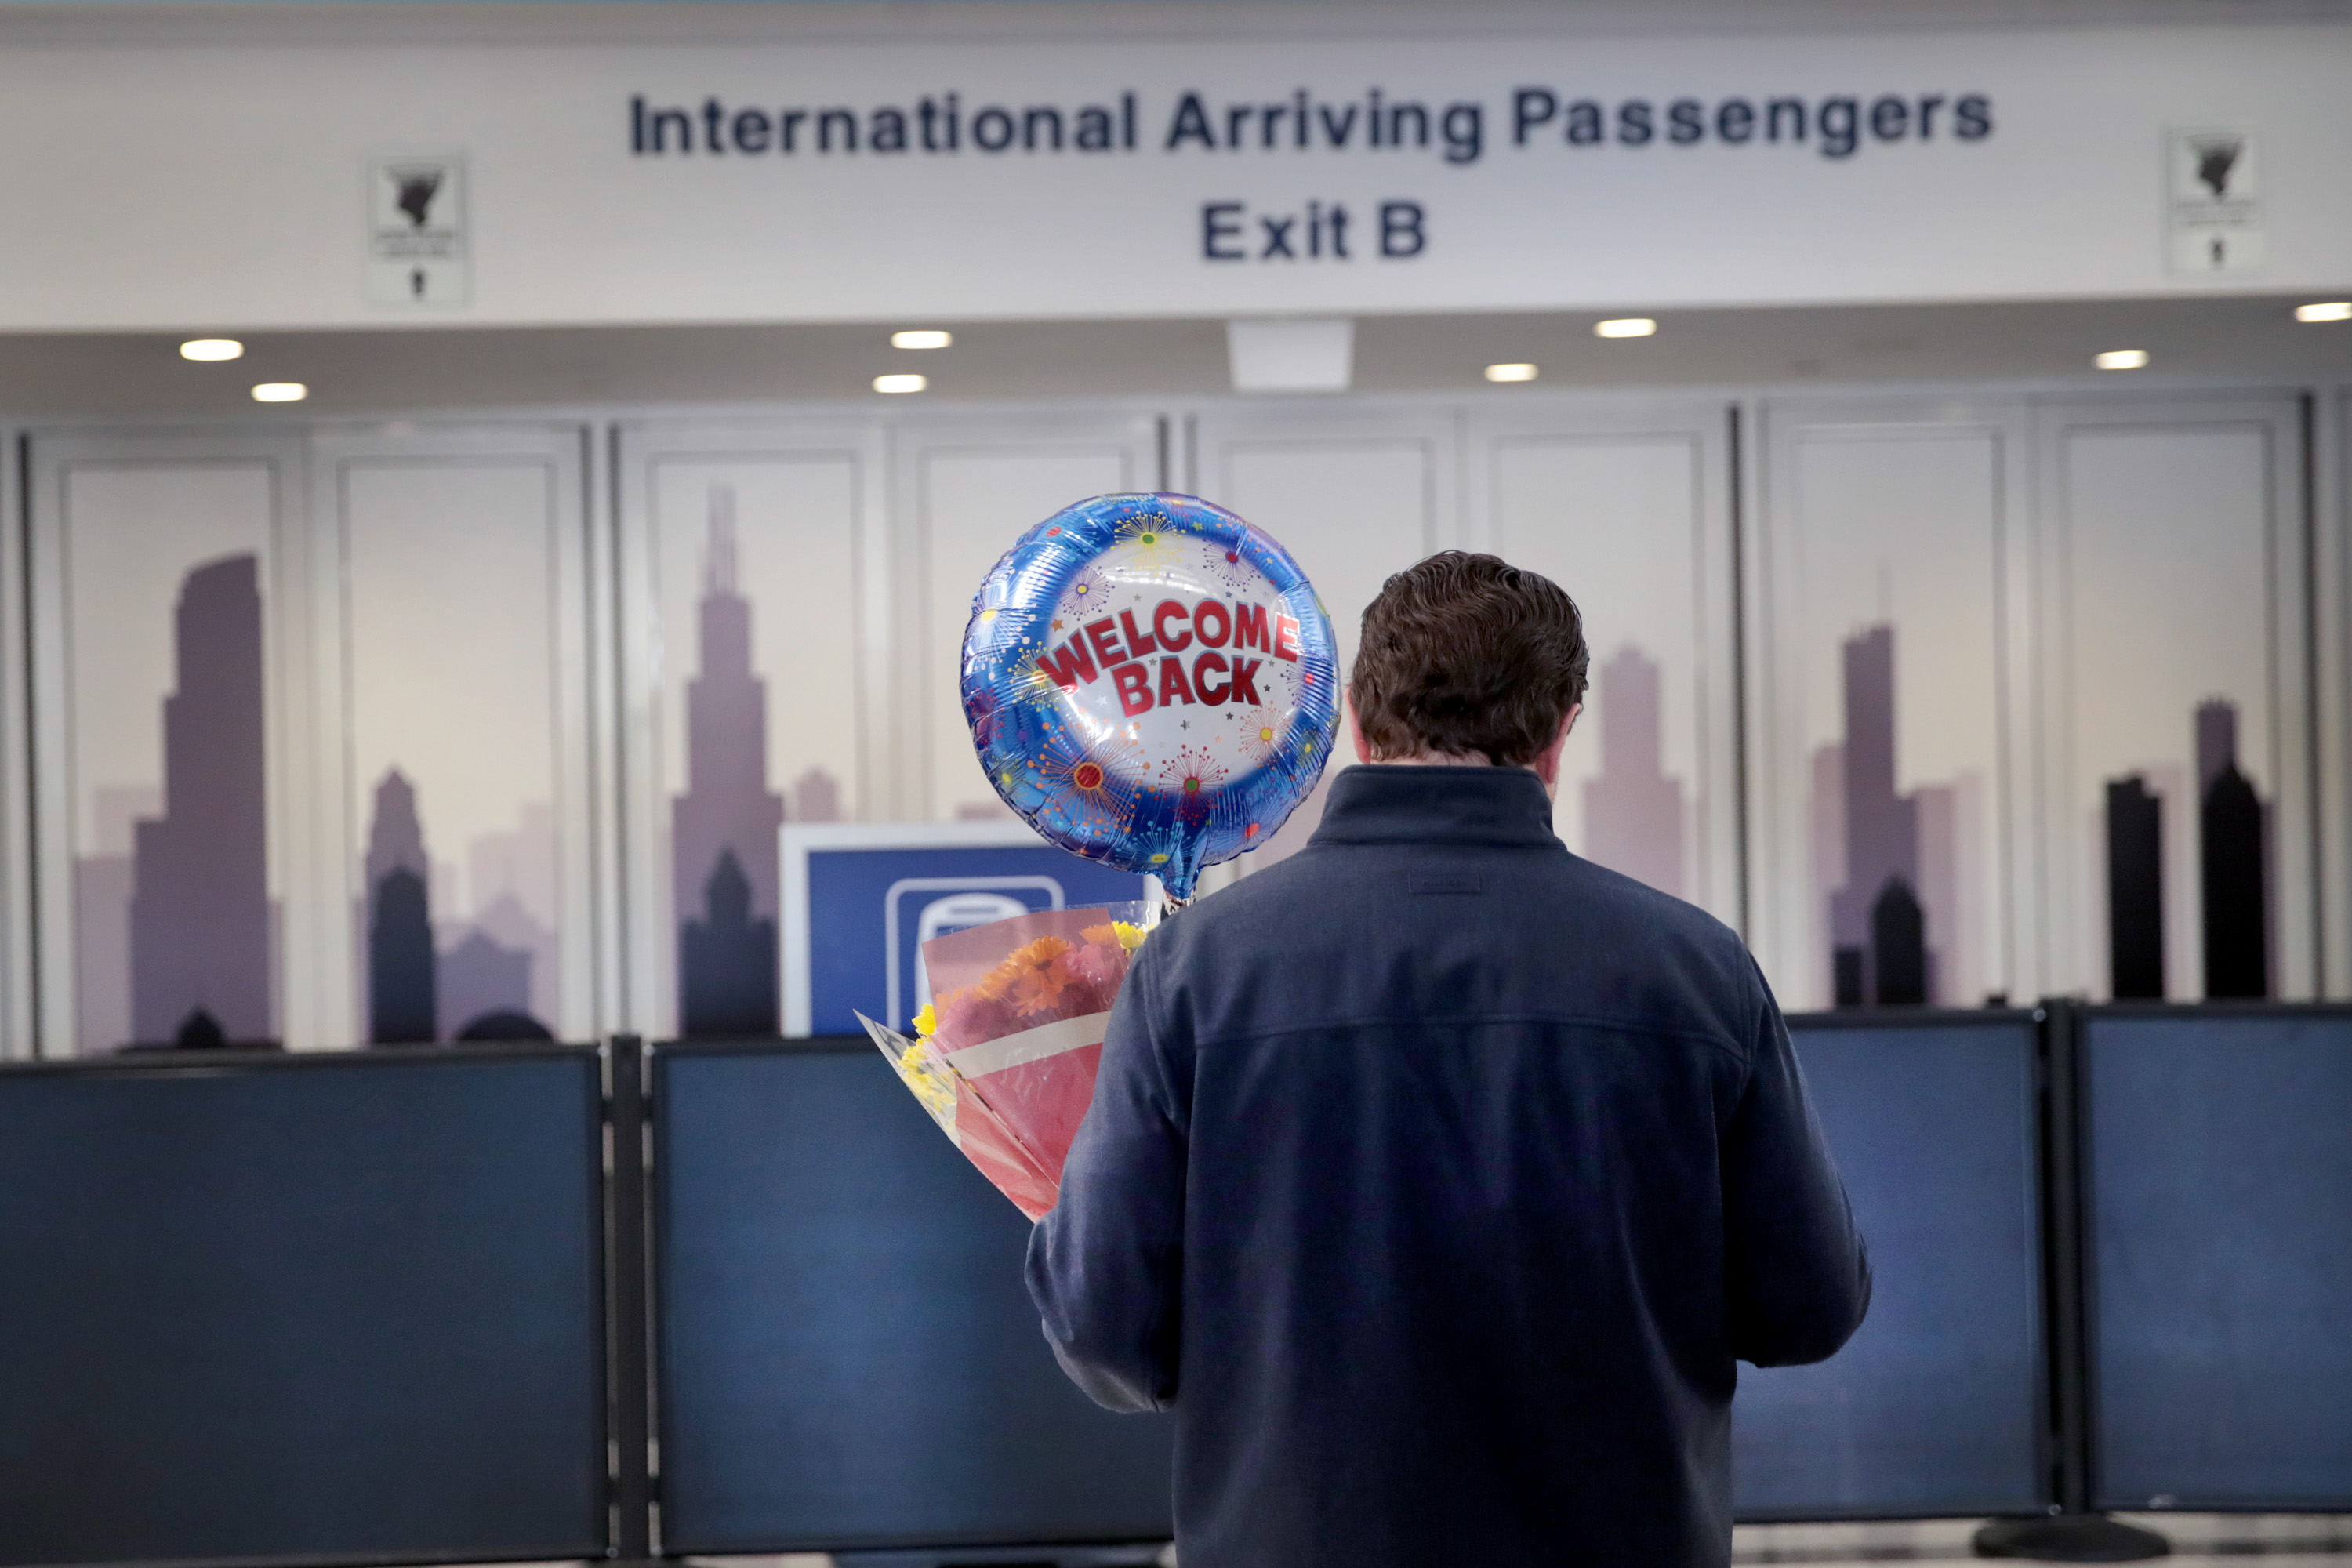 The arrival area in the international terminal at O'Hare Airport on March 13, 2020 in Chicago, Illinois.